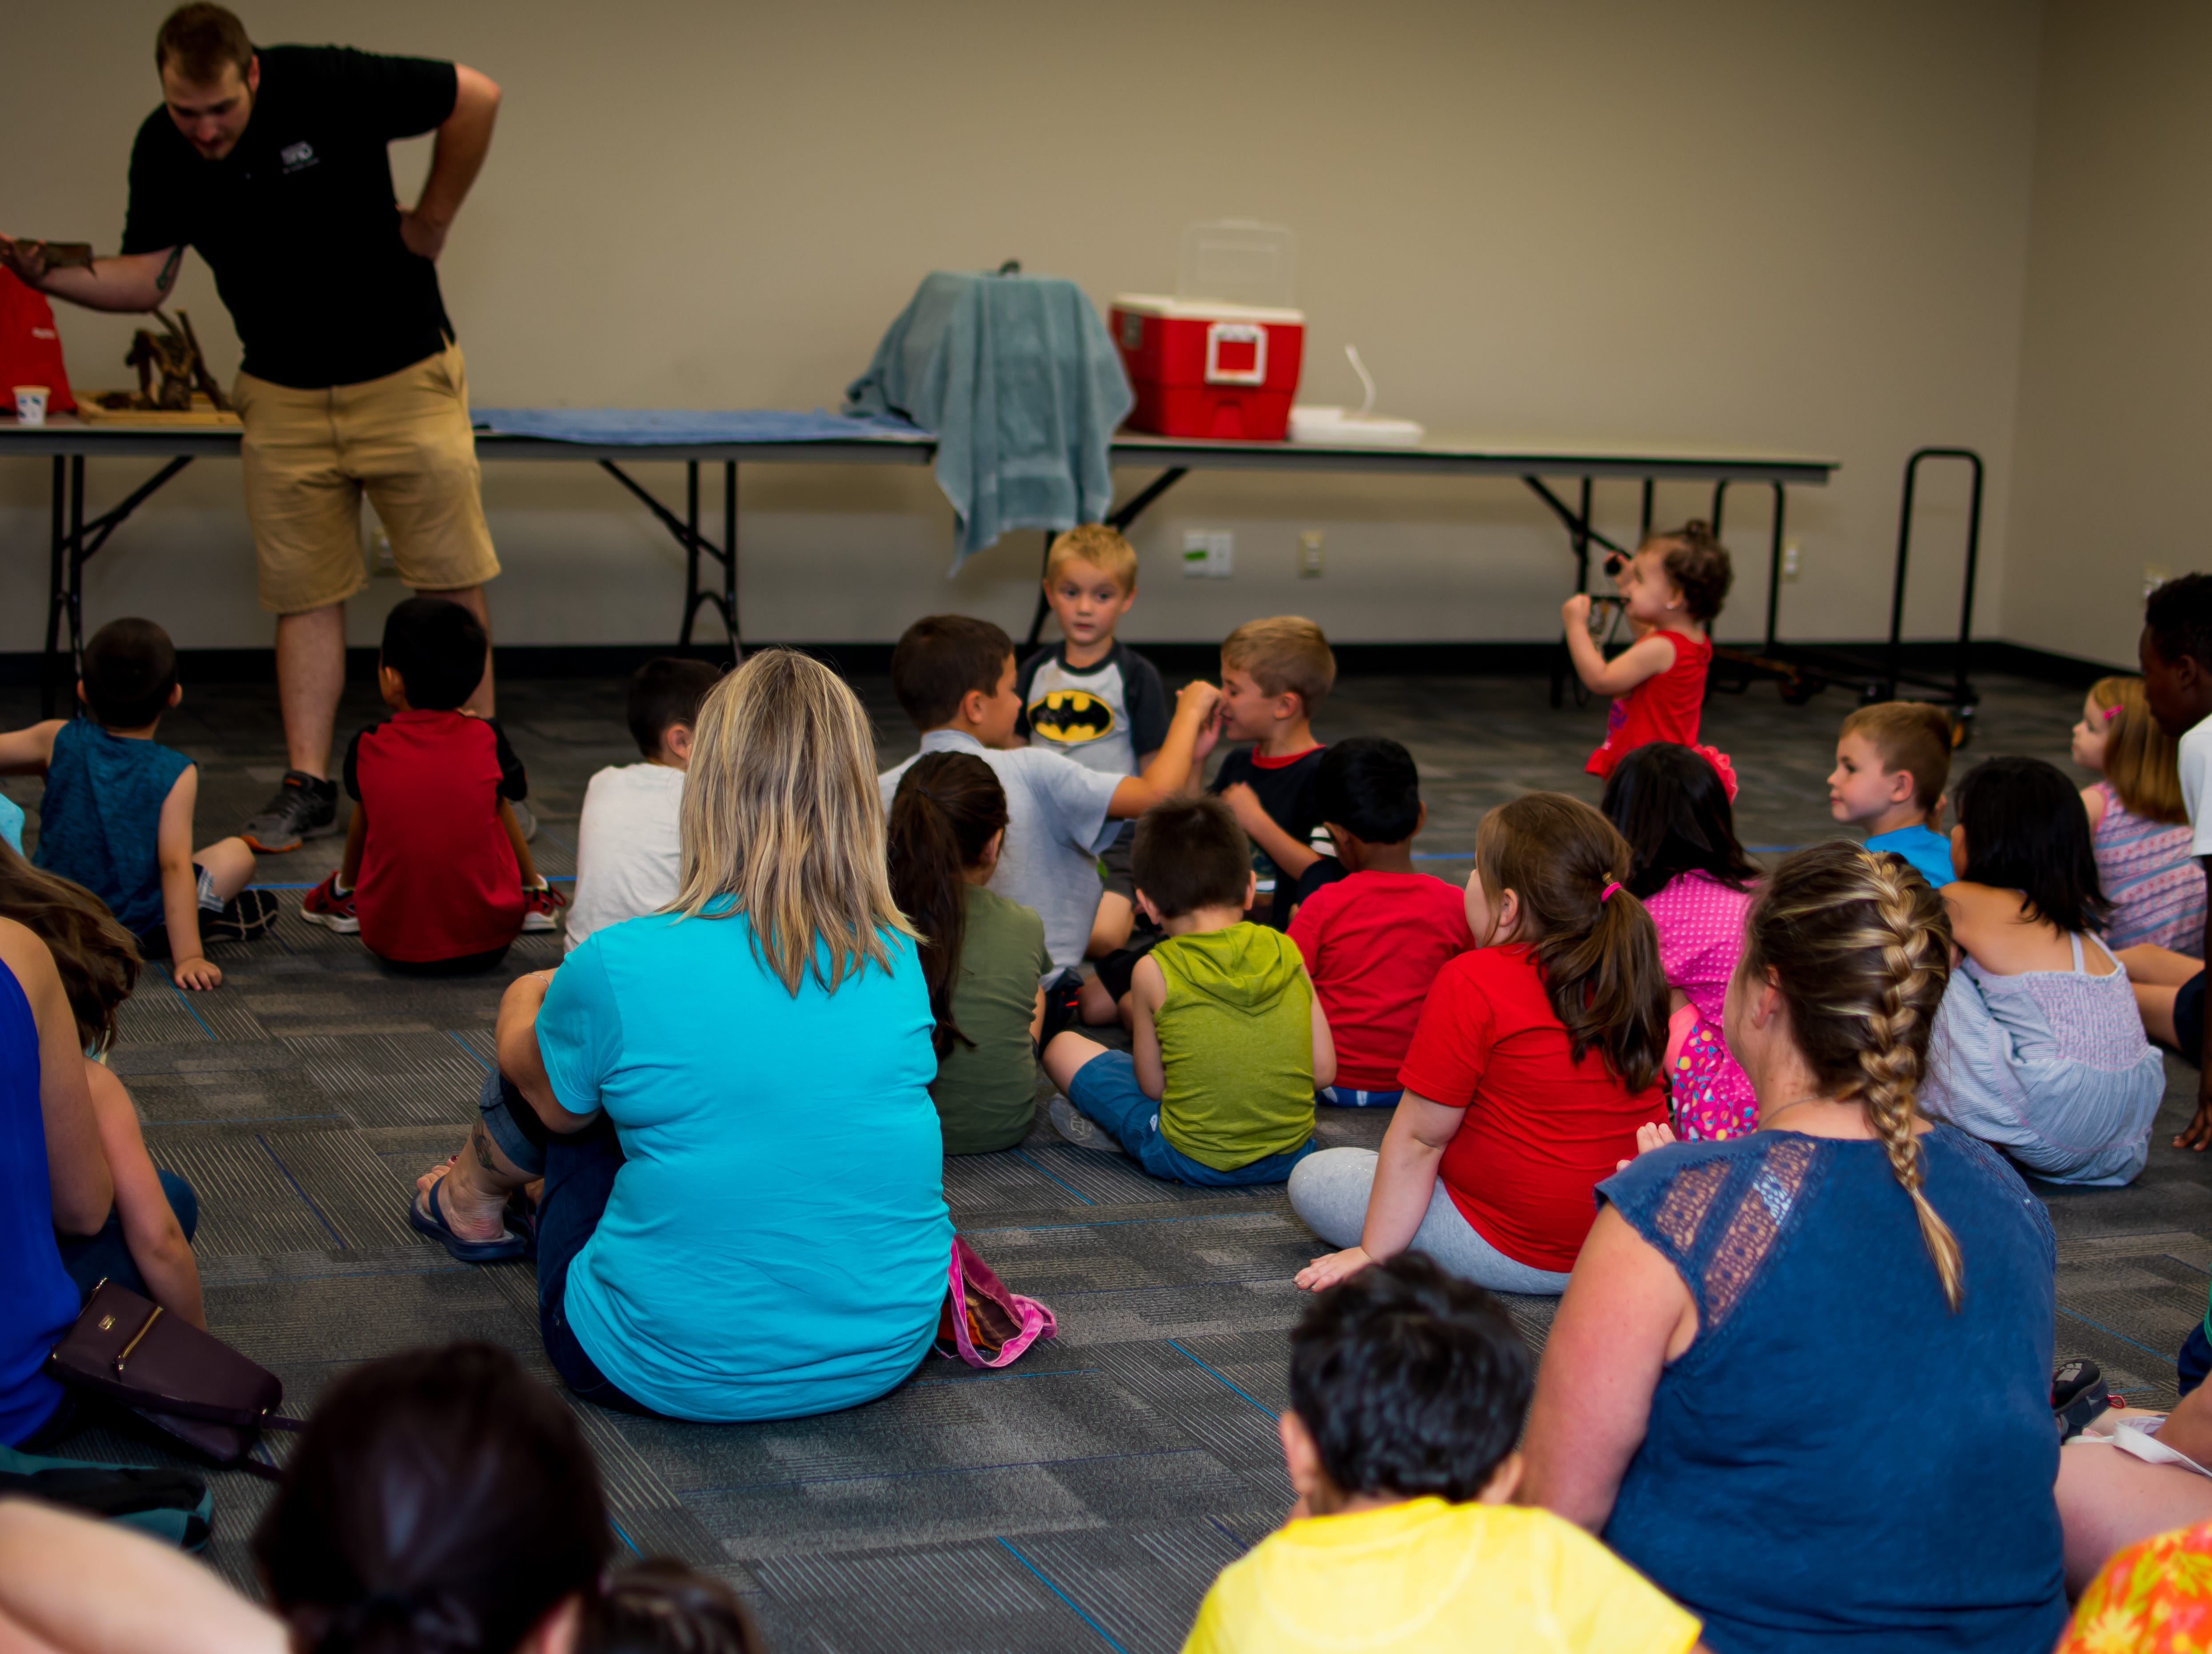 Families from Clive and the surrounding area attend Thursday Night Fun Presents Zoo Show and Tell at the Clive Public Library's Zoo Show and Tell in Clive.